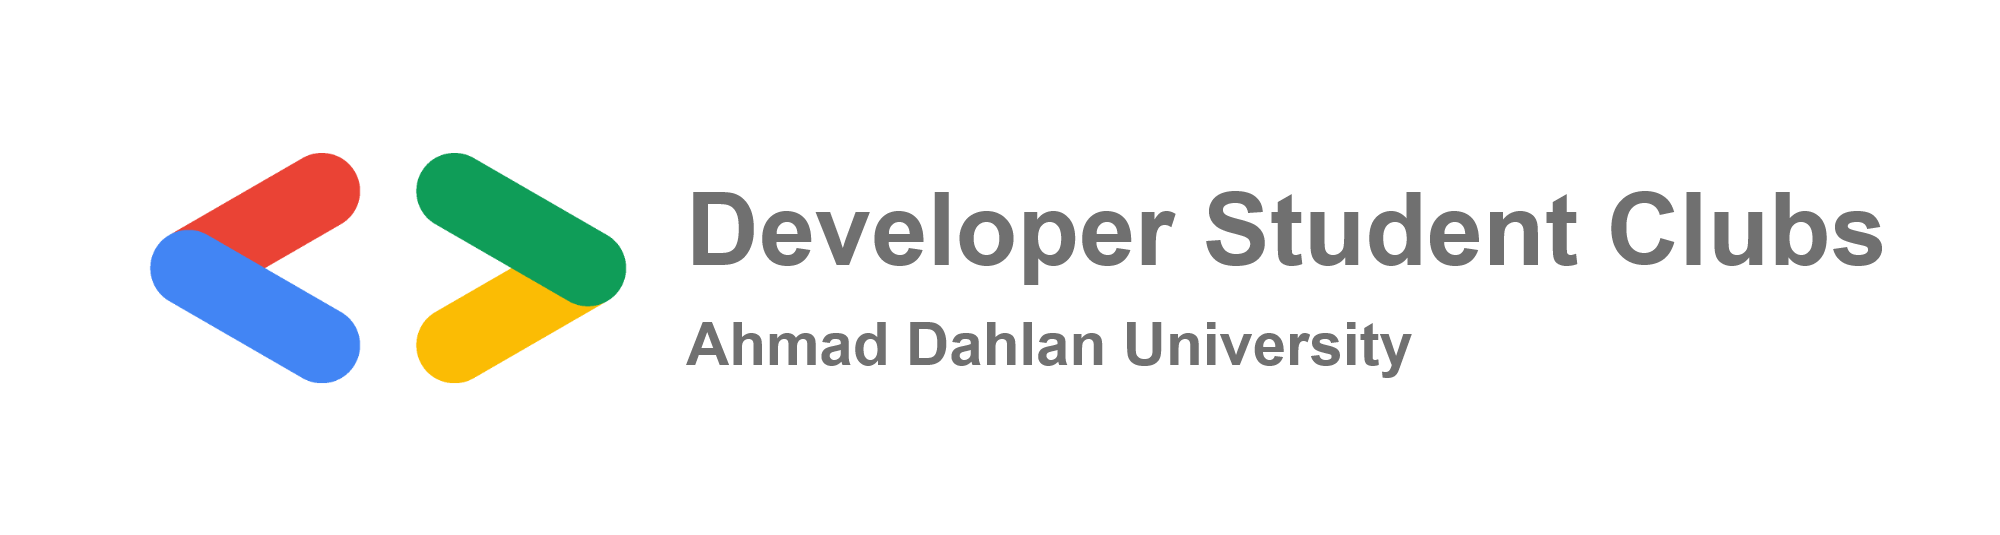 Cloud Study Jam - Developer Student Club Ahmad Dahlan University